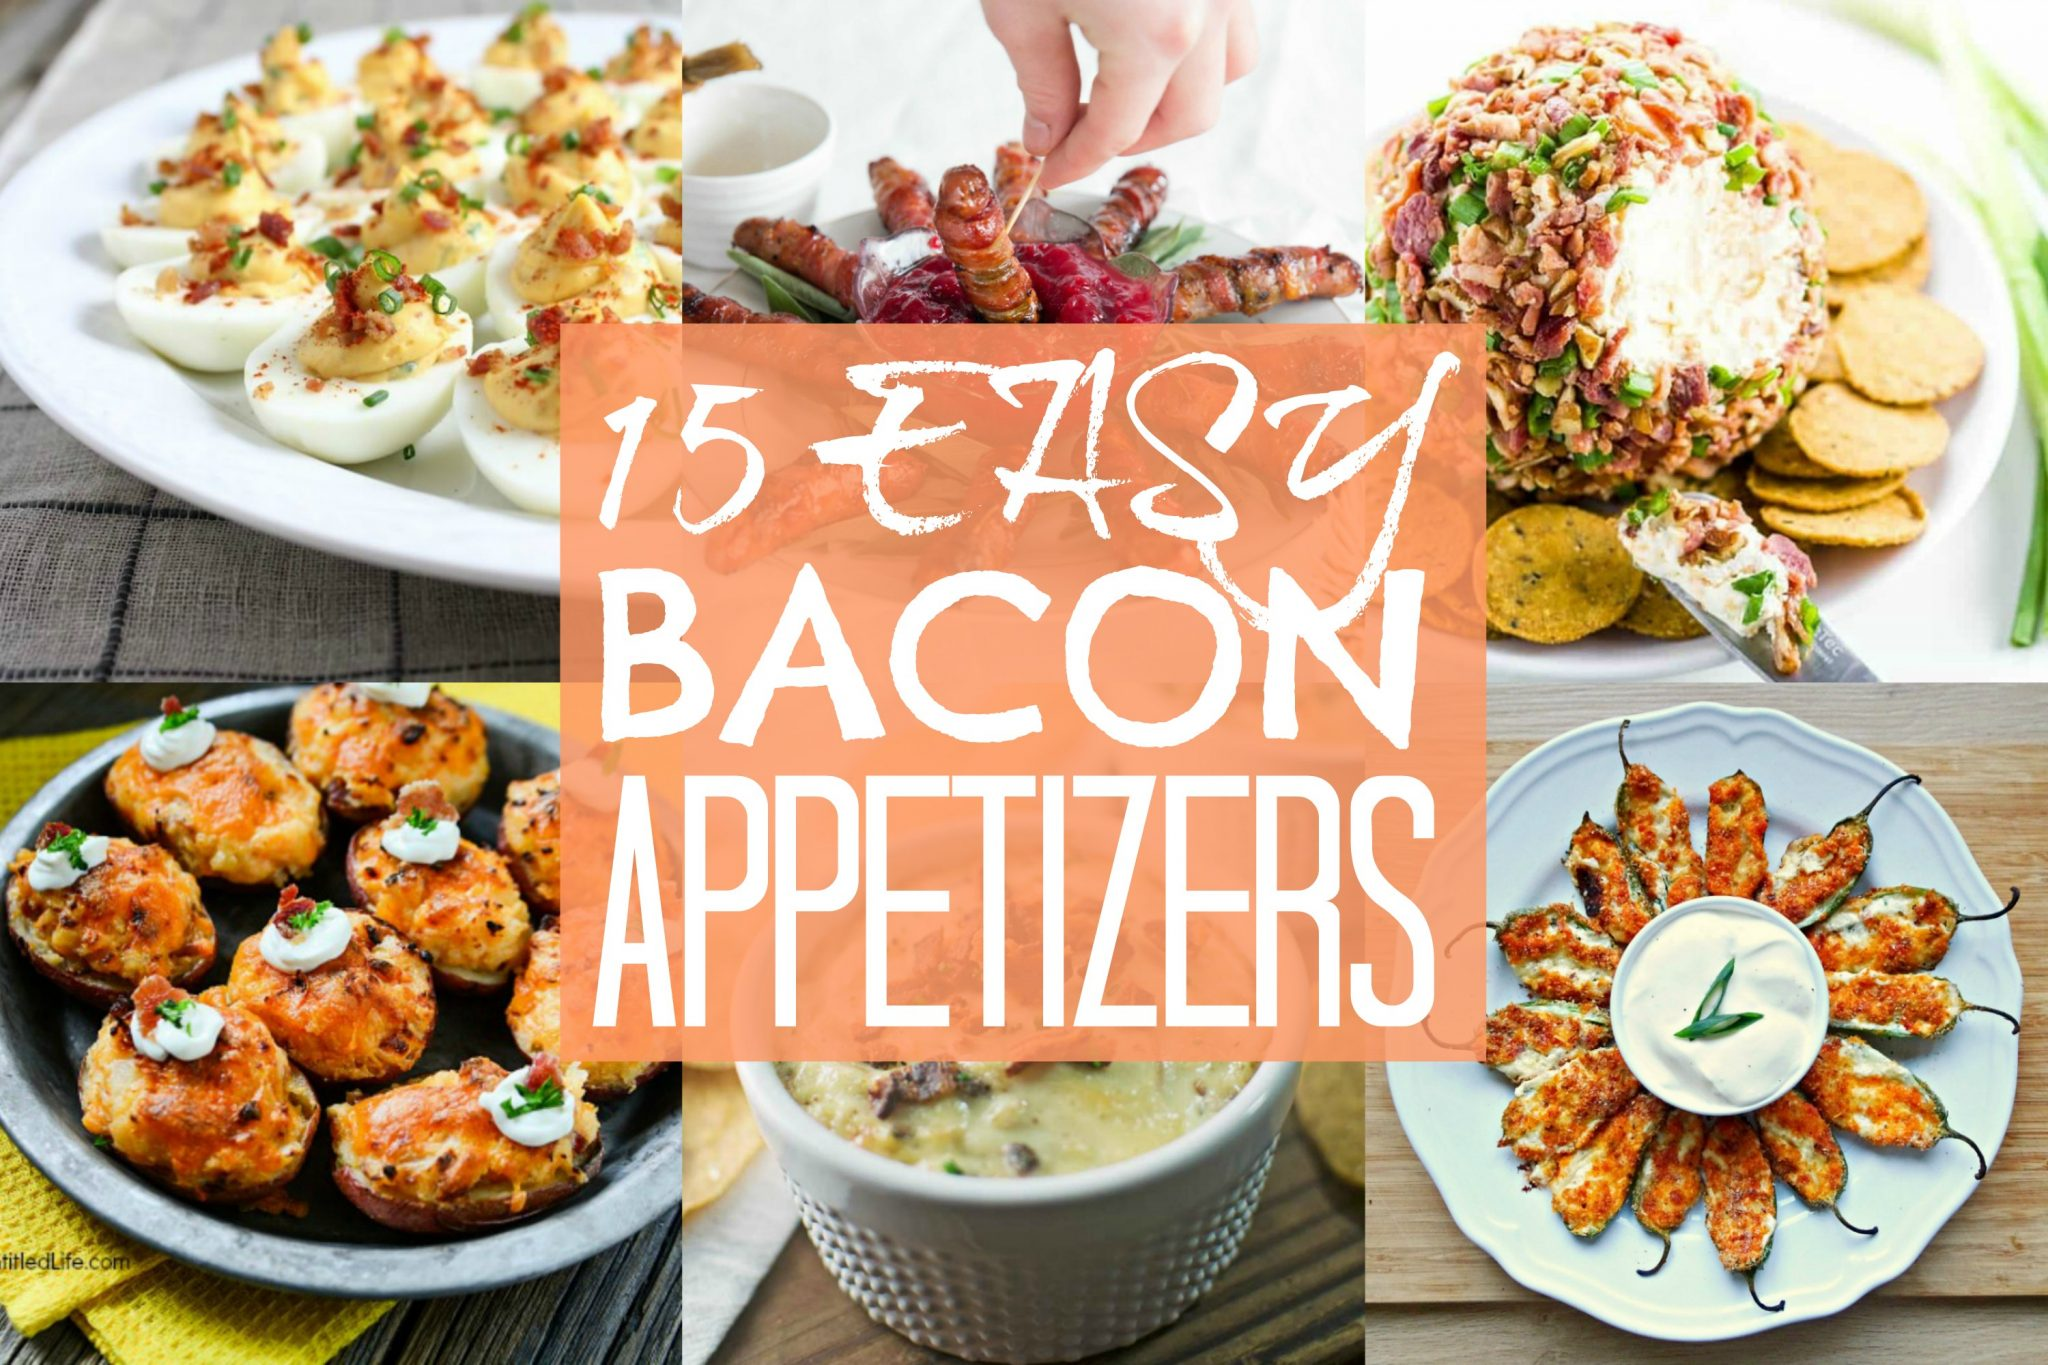 50 Savory, Addictive Bacon Appetizers | Taste of Home